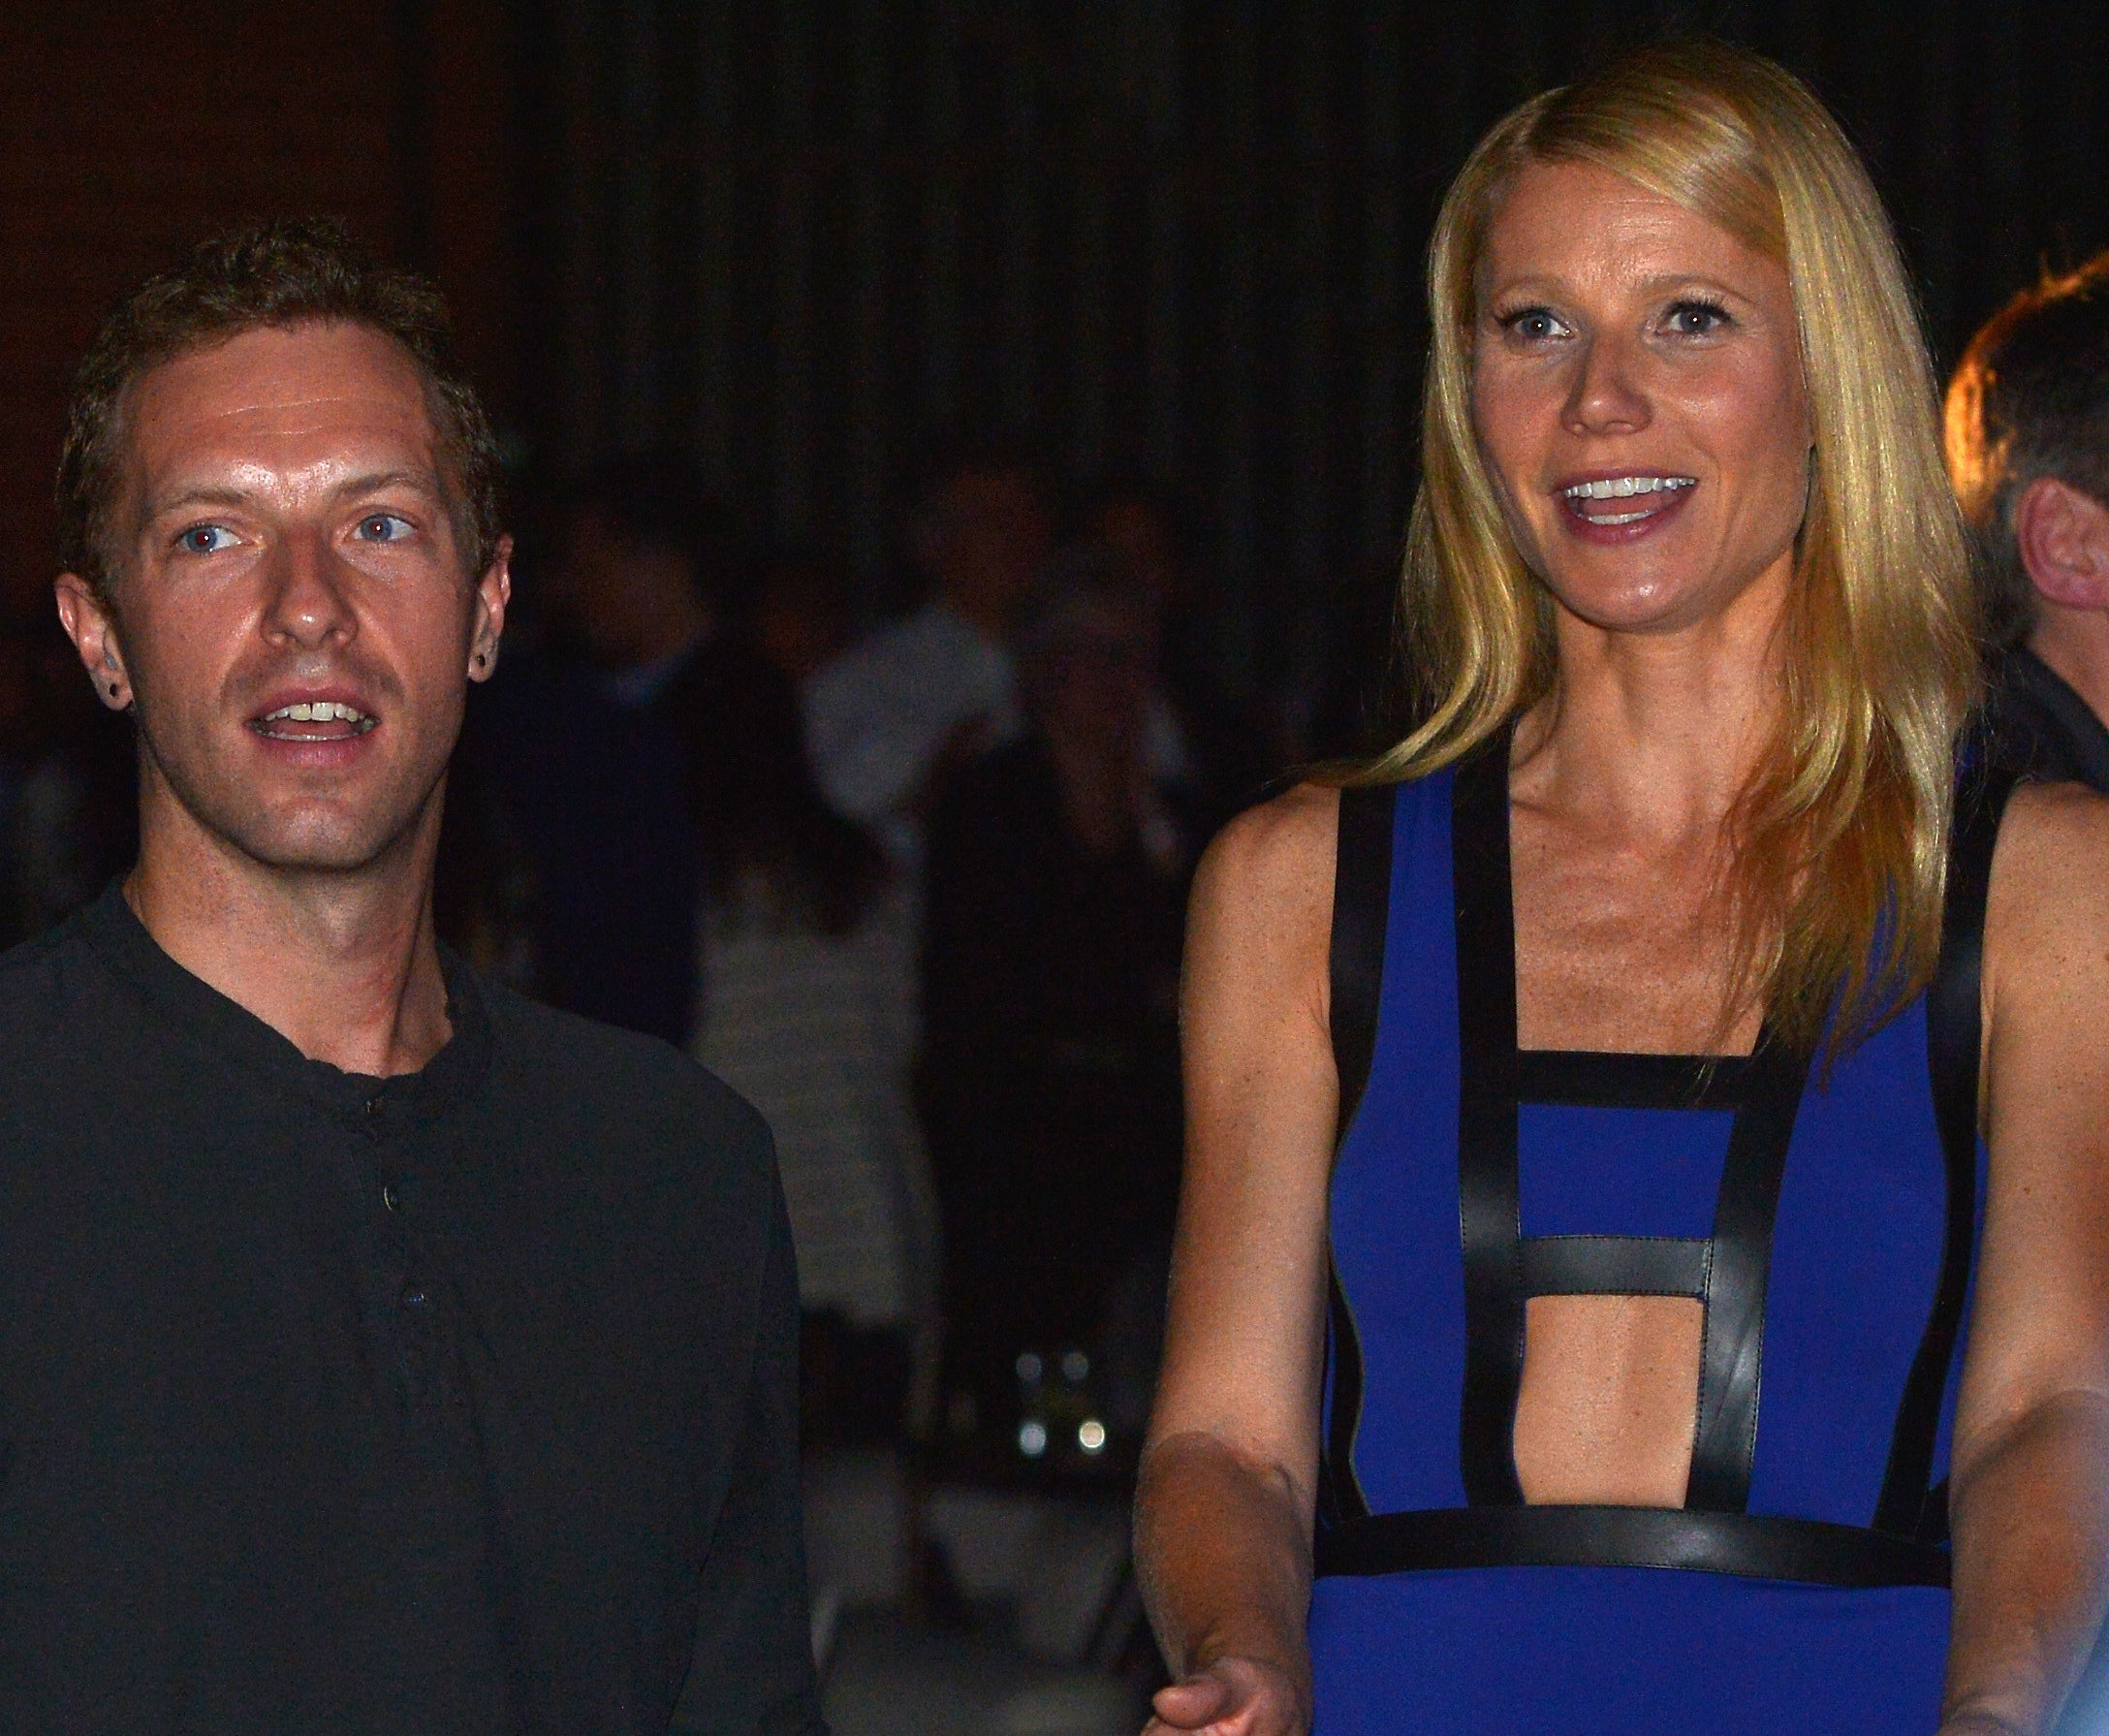 Gwyneth sits next to Chris at an event